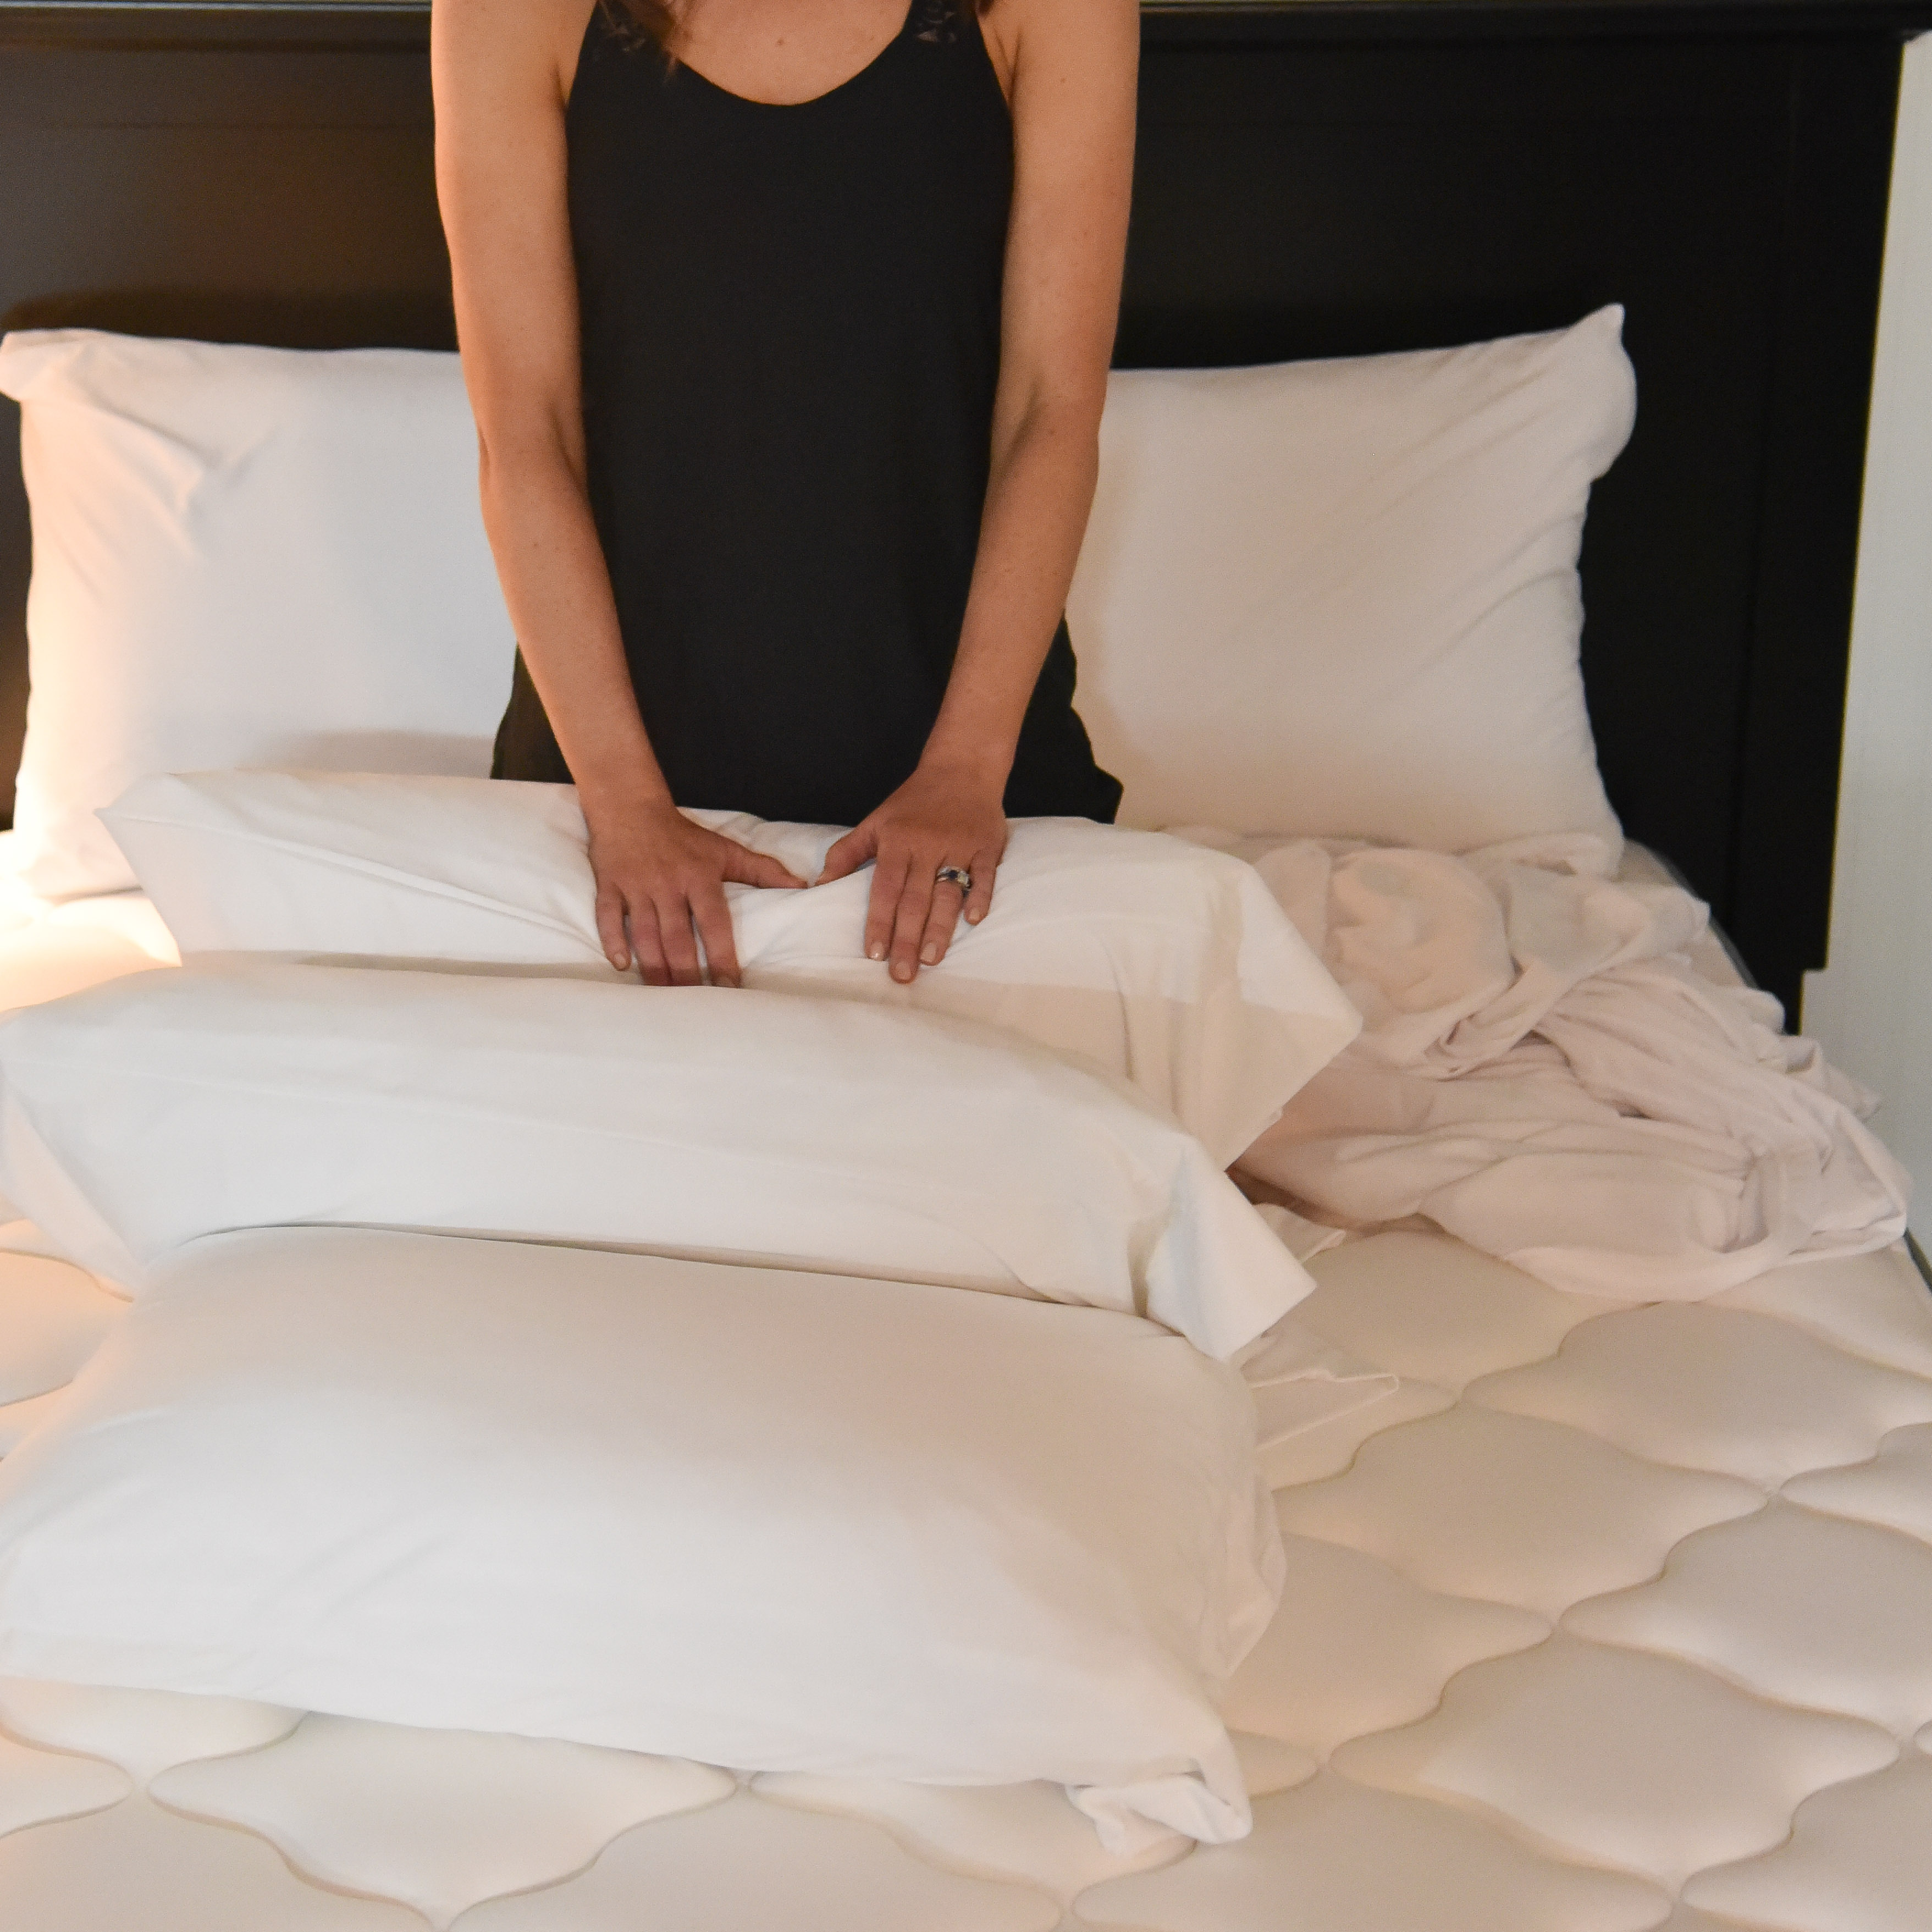 pillow case woman sitting up in bed surrounded by white pillows